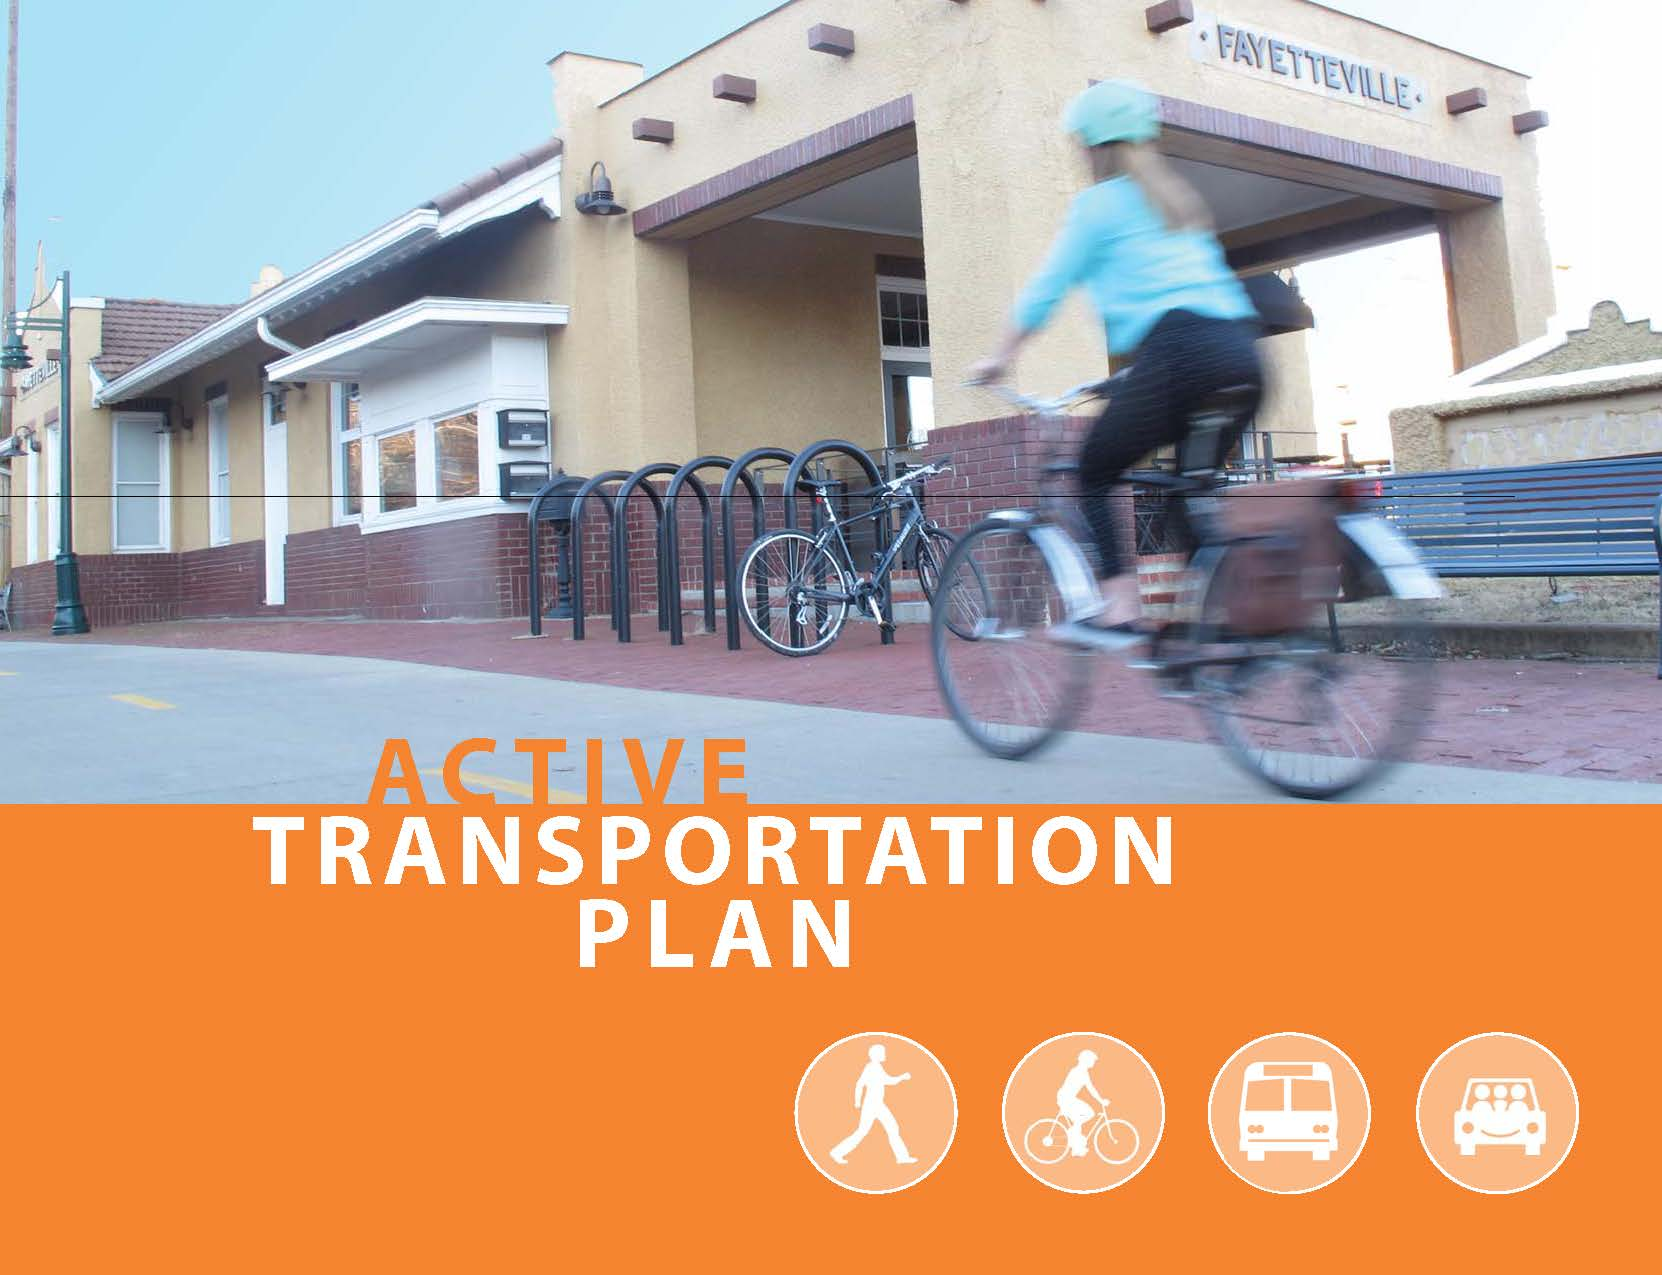 Cover image of the Active Transportation Plan